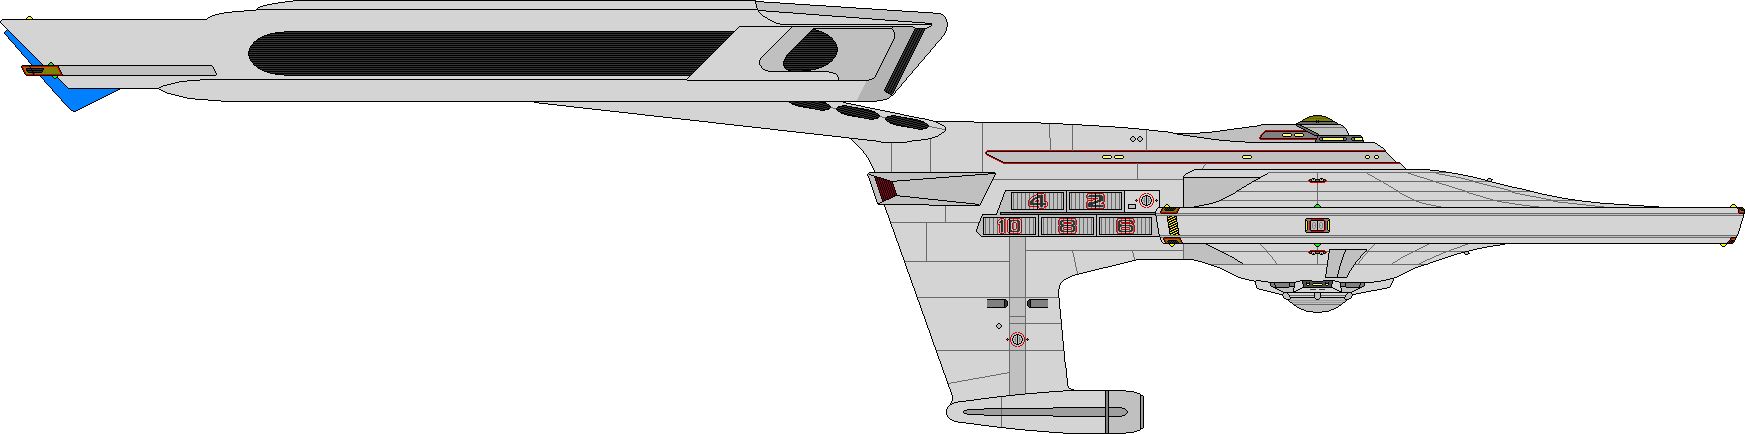 Fighter carrier   hornet class by kelso323 d7ay0s8